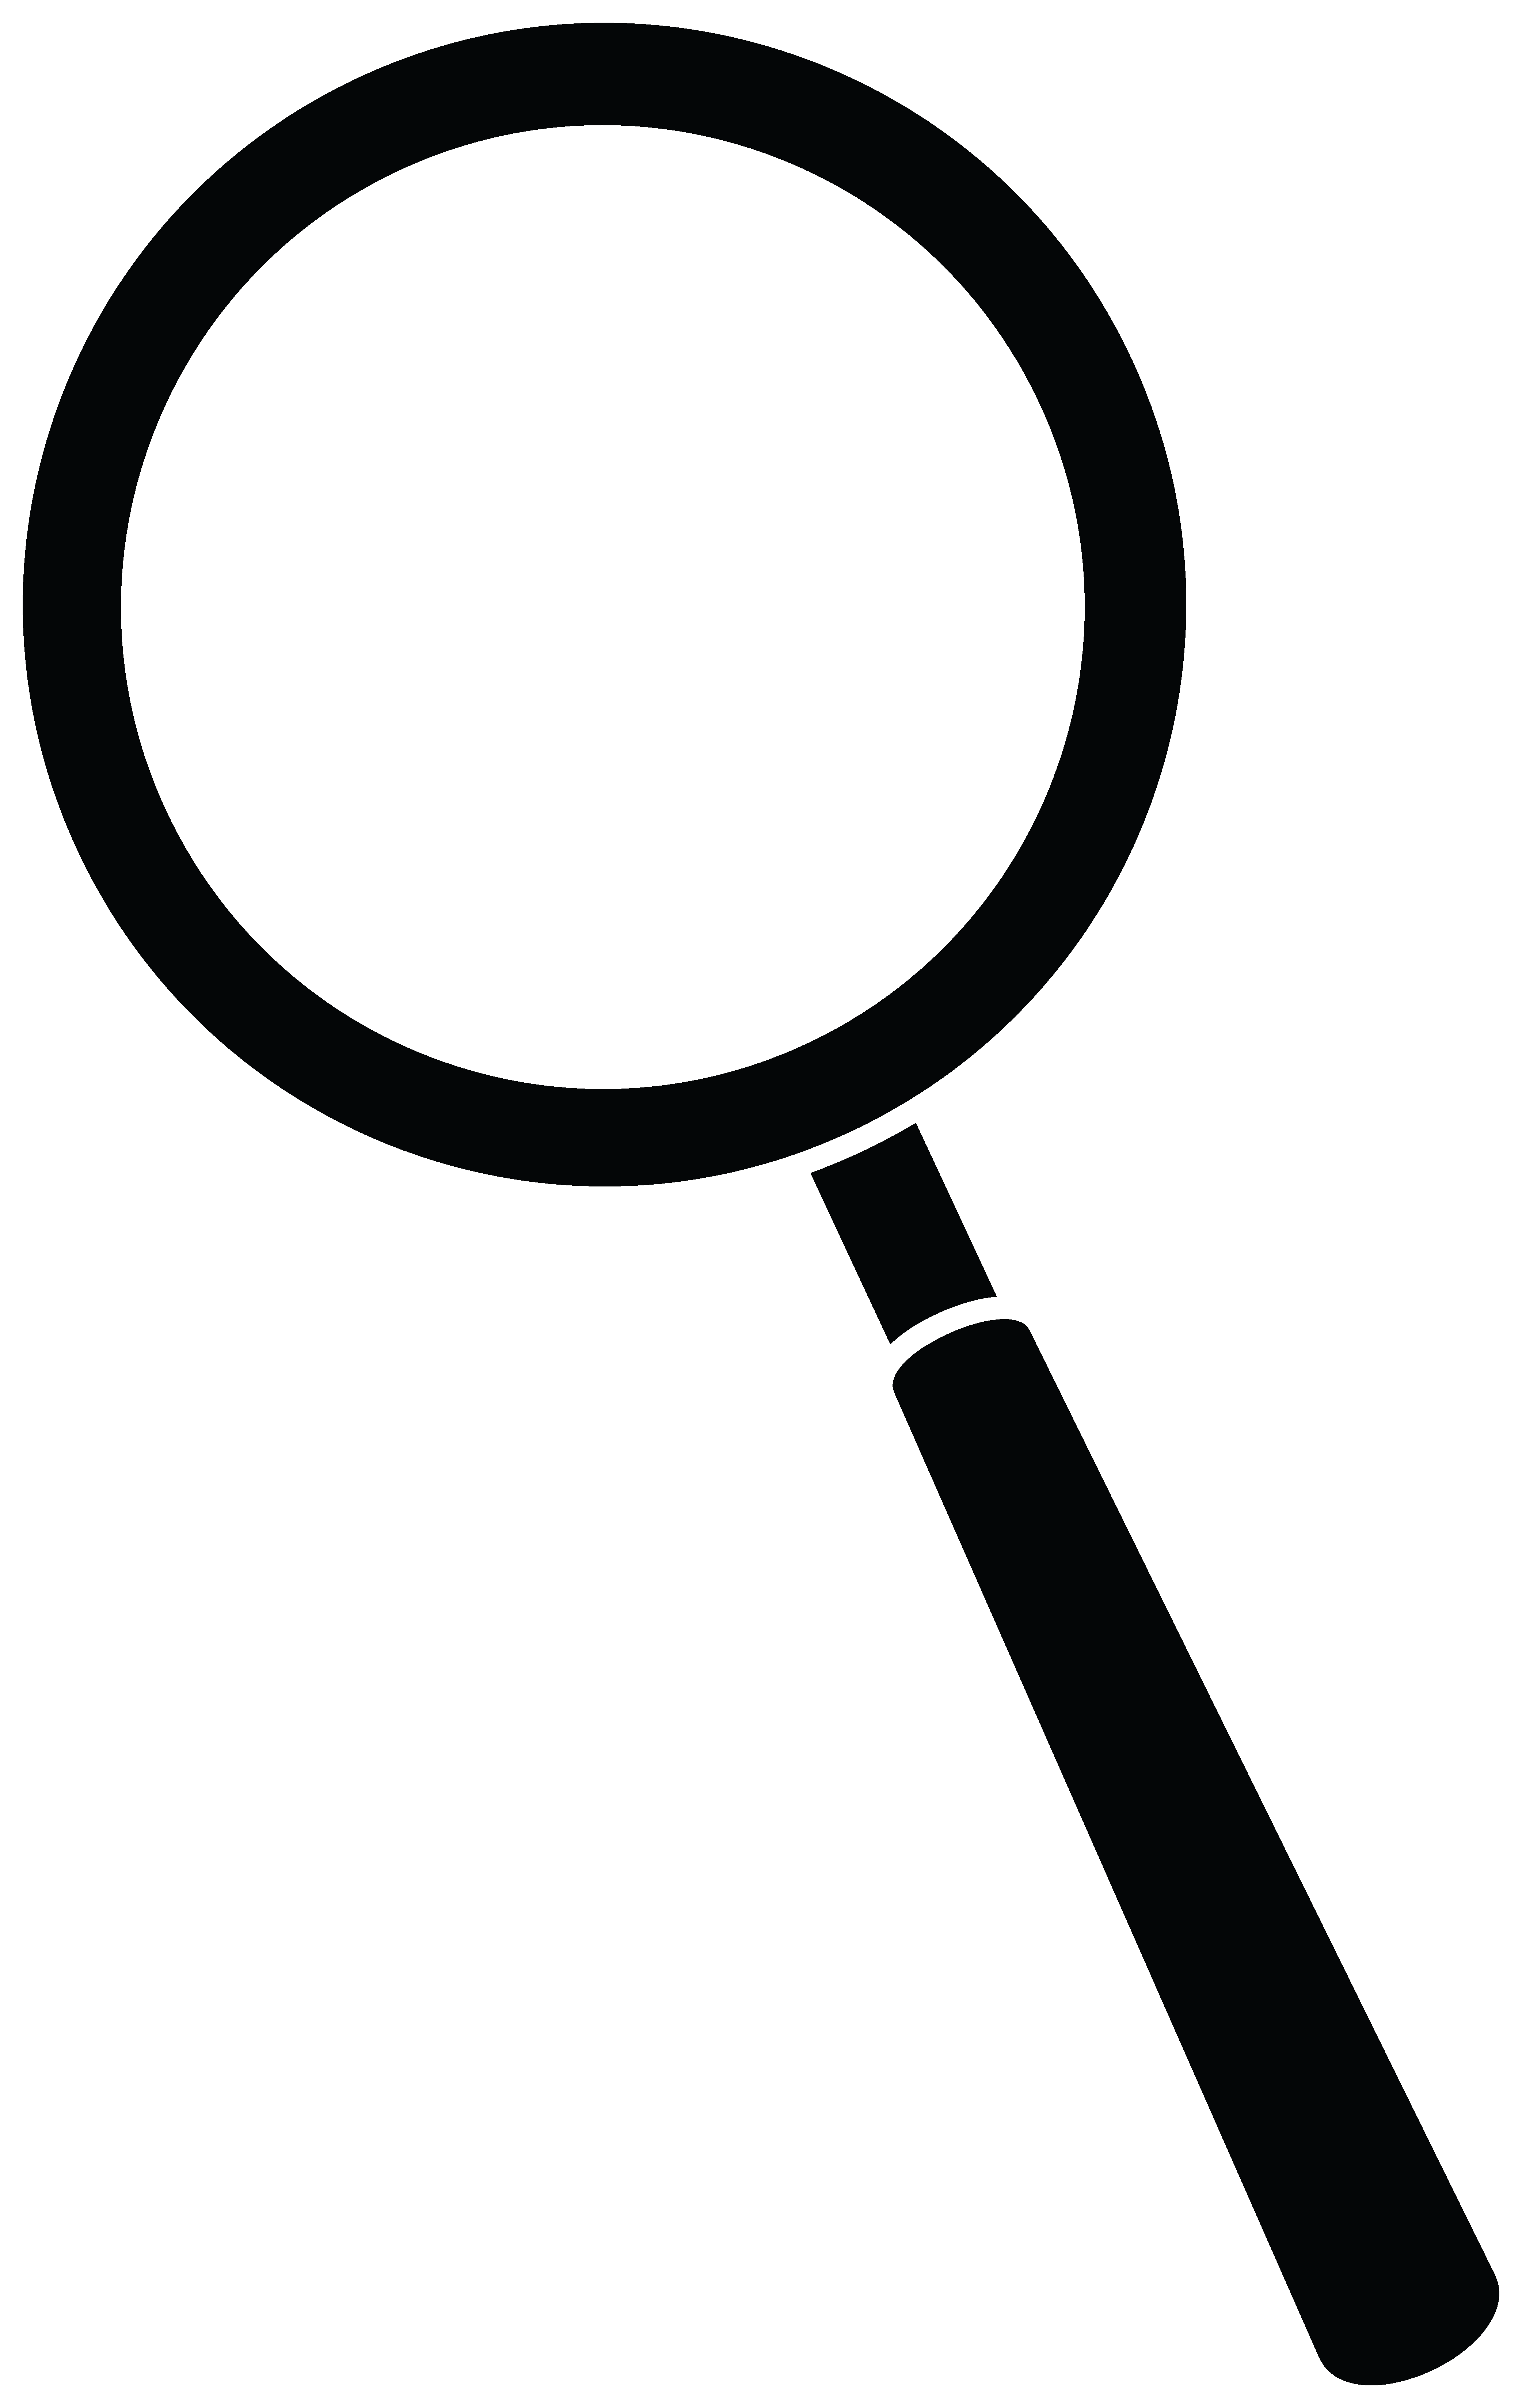 Clip Art Clipart Magnifying Glass magnifying glass clipart black and white panda free clipart